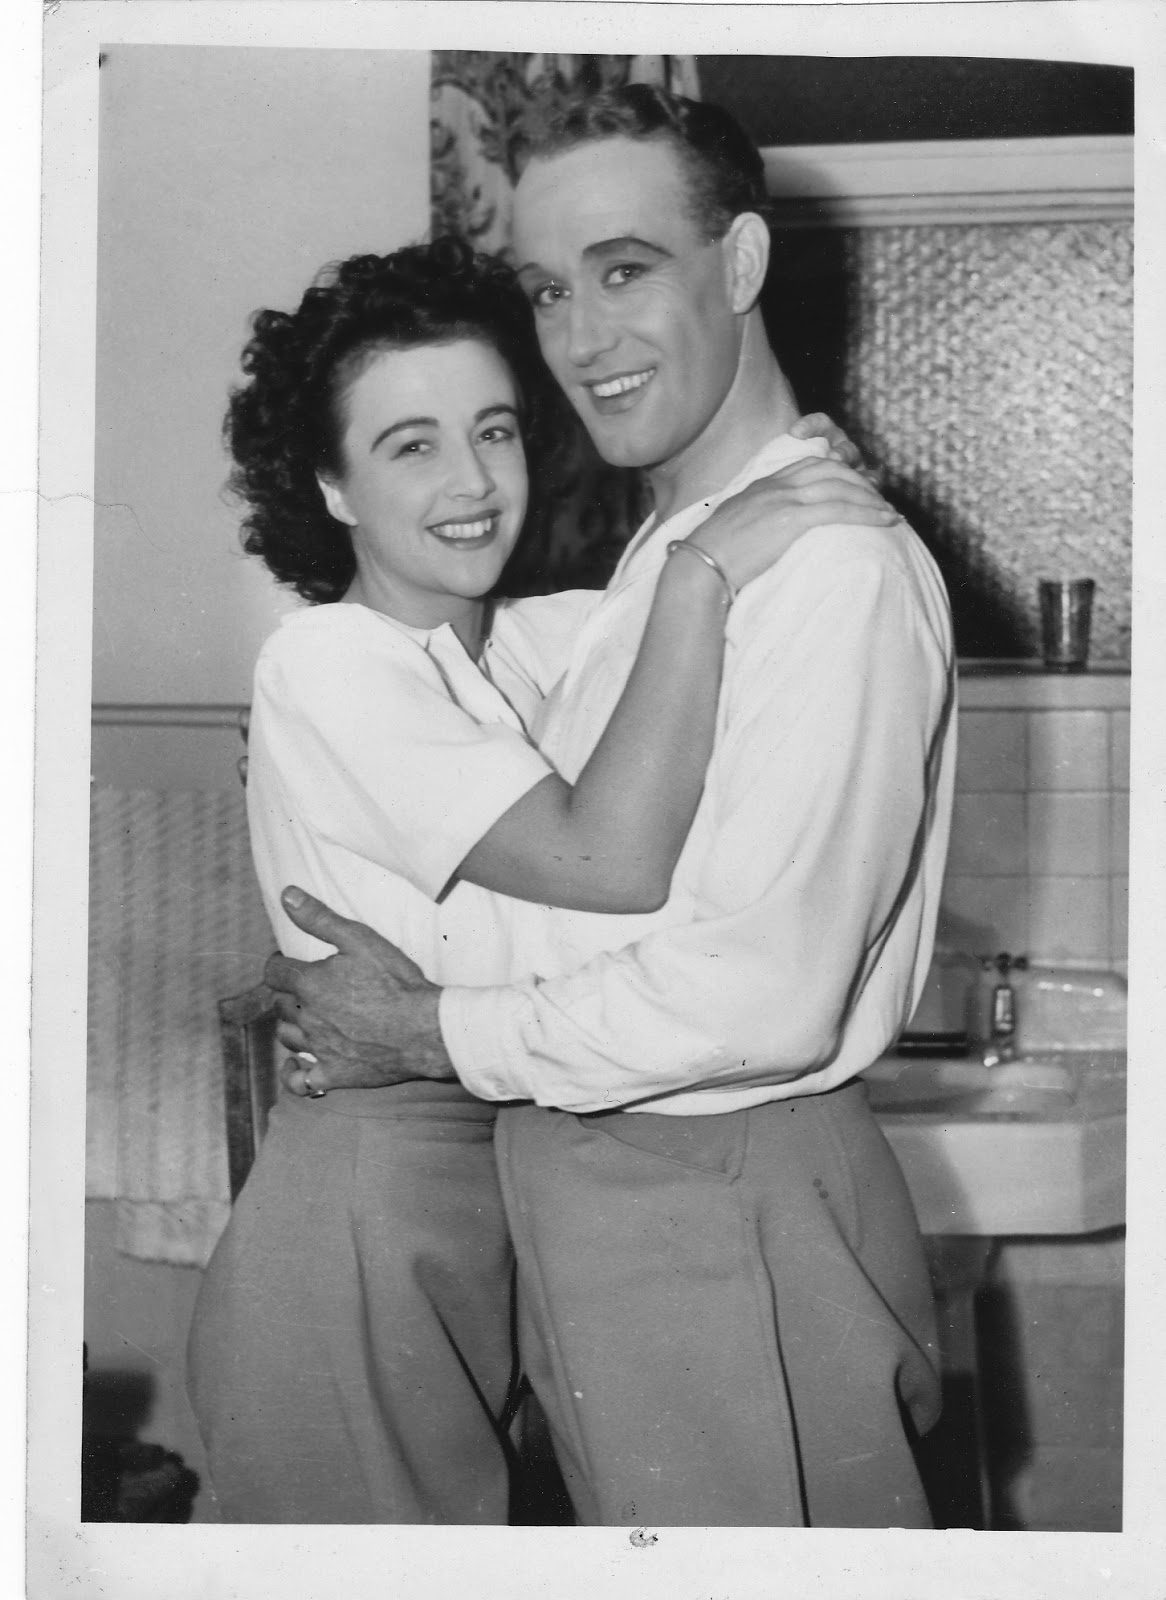 Max Oldaker and Joy Beattie, stars of The Desert Song, 1945.